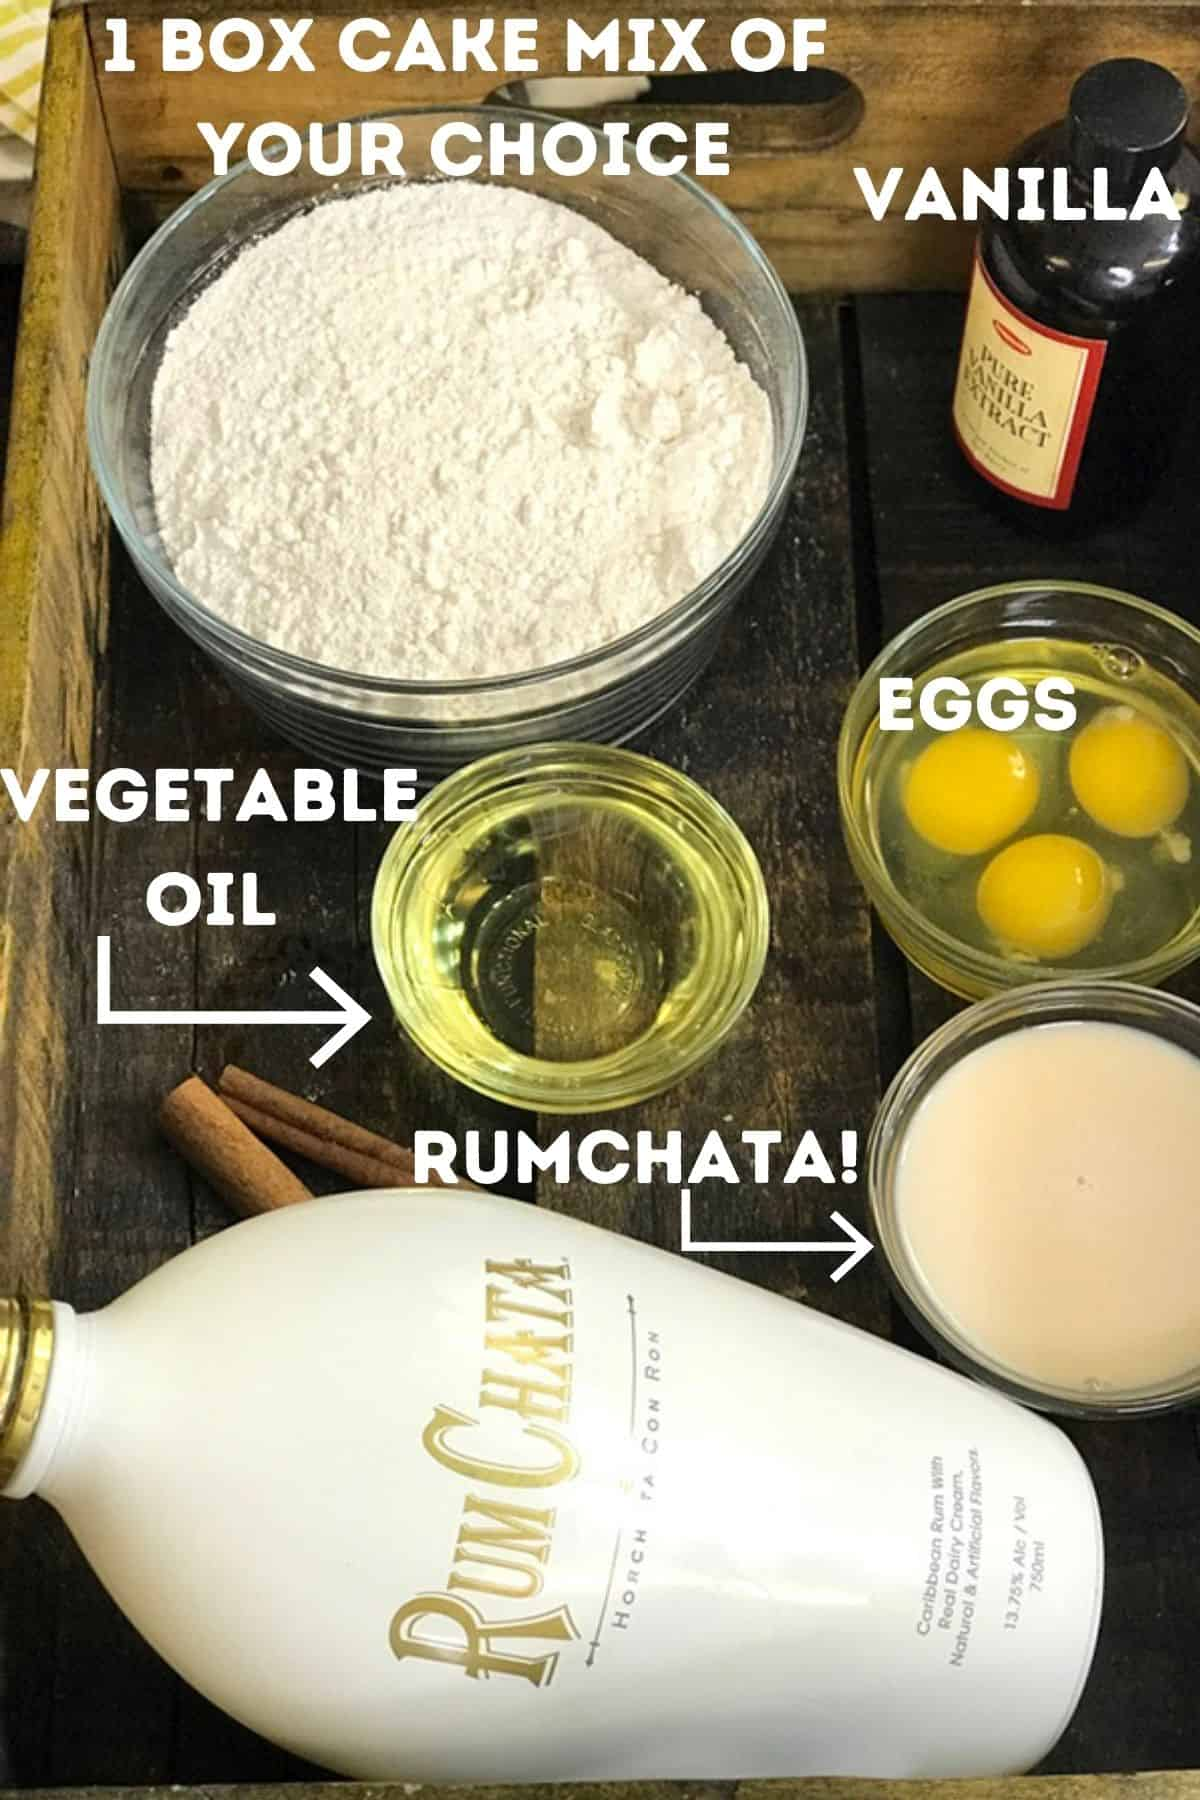 RumChata and other ingredients for cupcakes